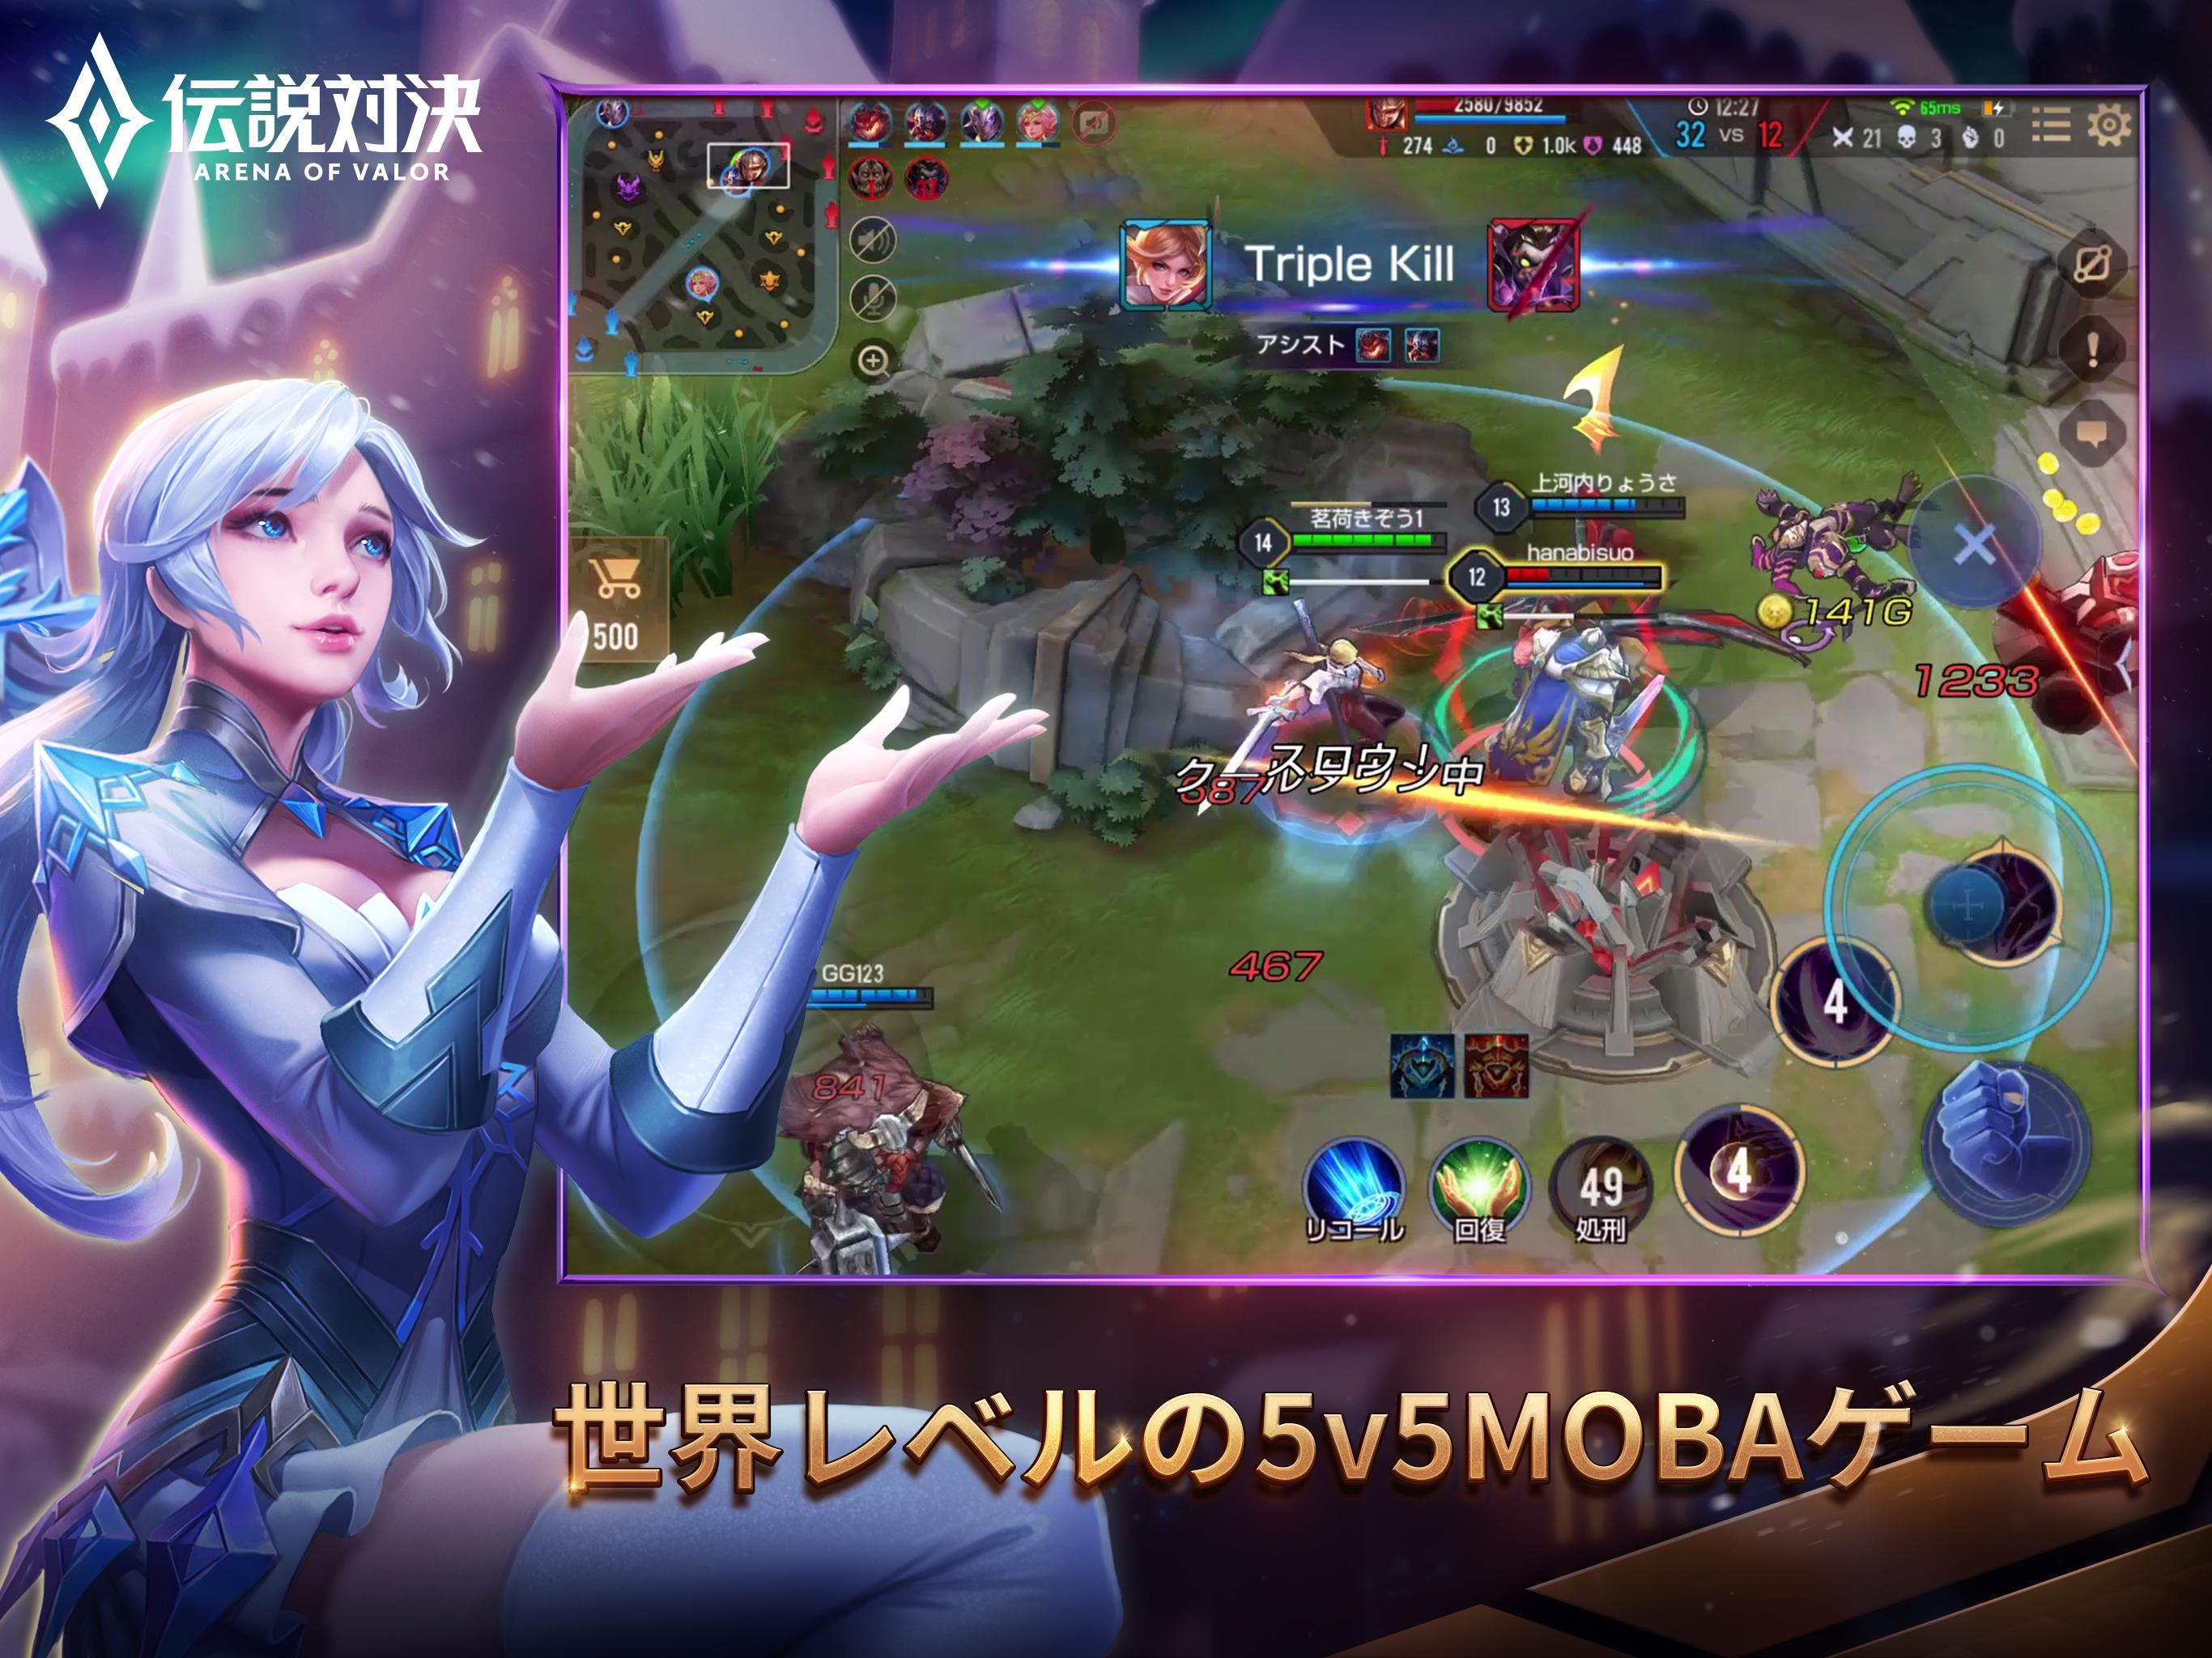 伝説対決 Arena of Valor 1.36.1.8 Screenshot 11